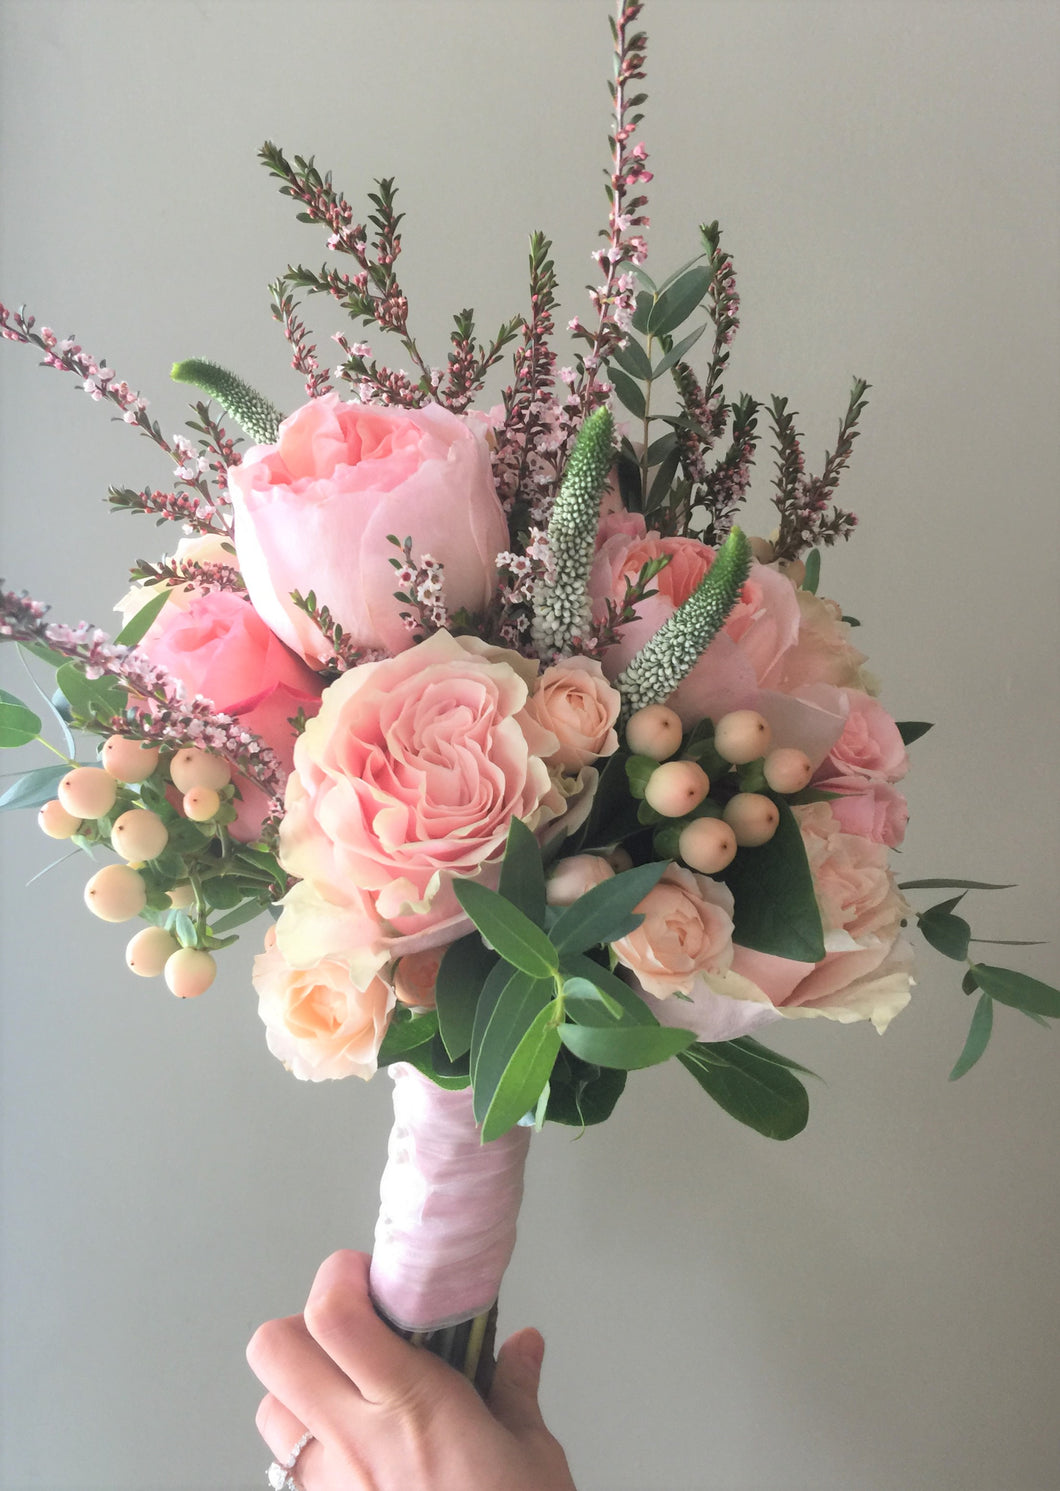 Watery Pastel Hand-tied Bridesmaid Bouquet - Flowerplustoronto